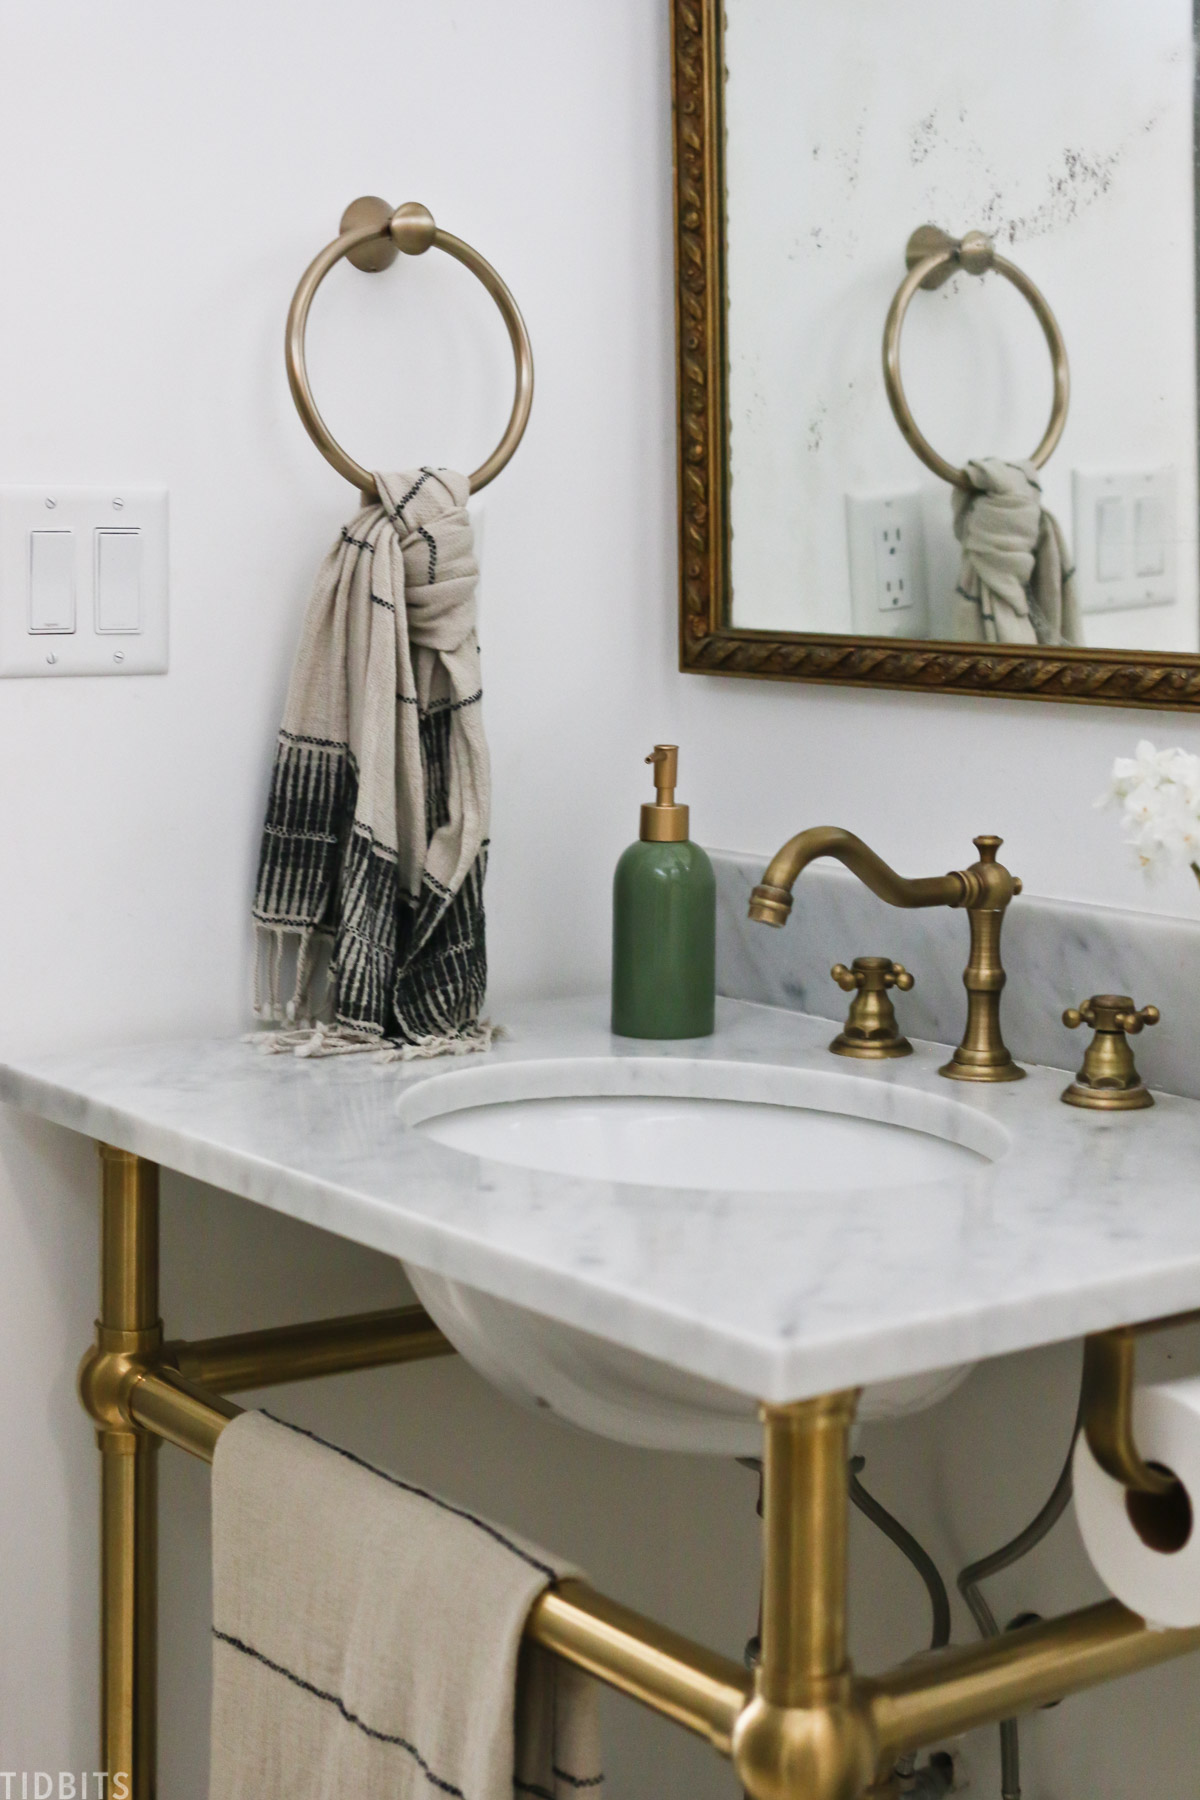 bathroom sink with gold colored finishes and green colored soap dispenser